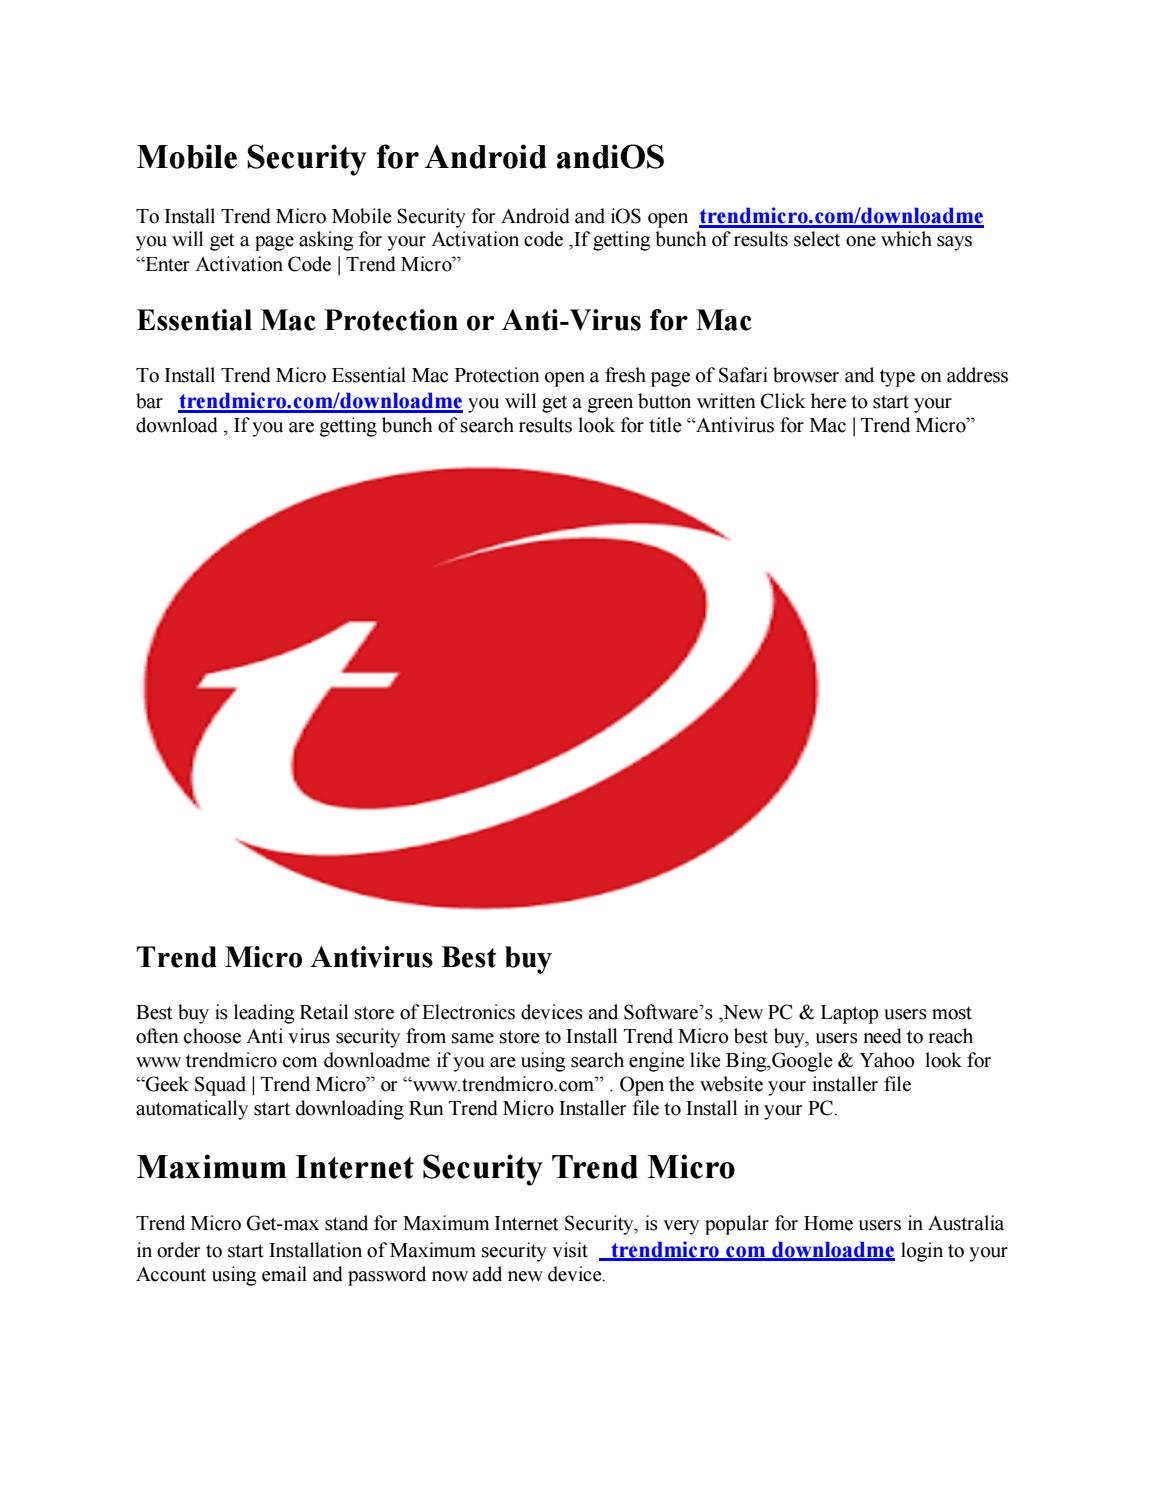 www trendmicro com/downloadme by Ajay dhiman - issuu